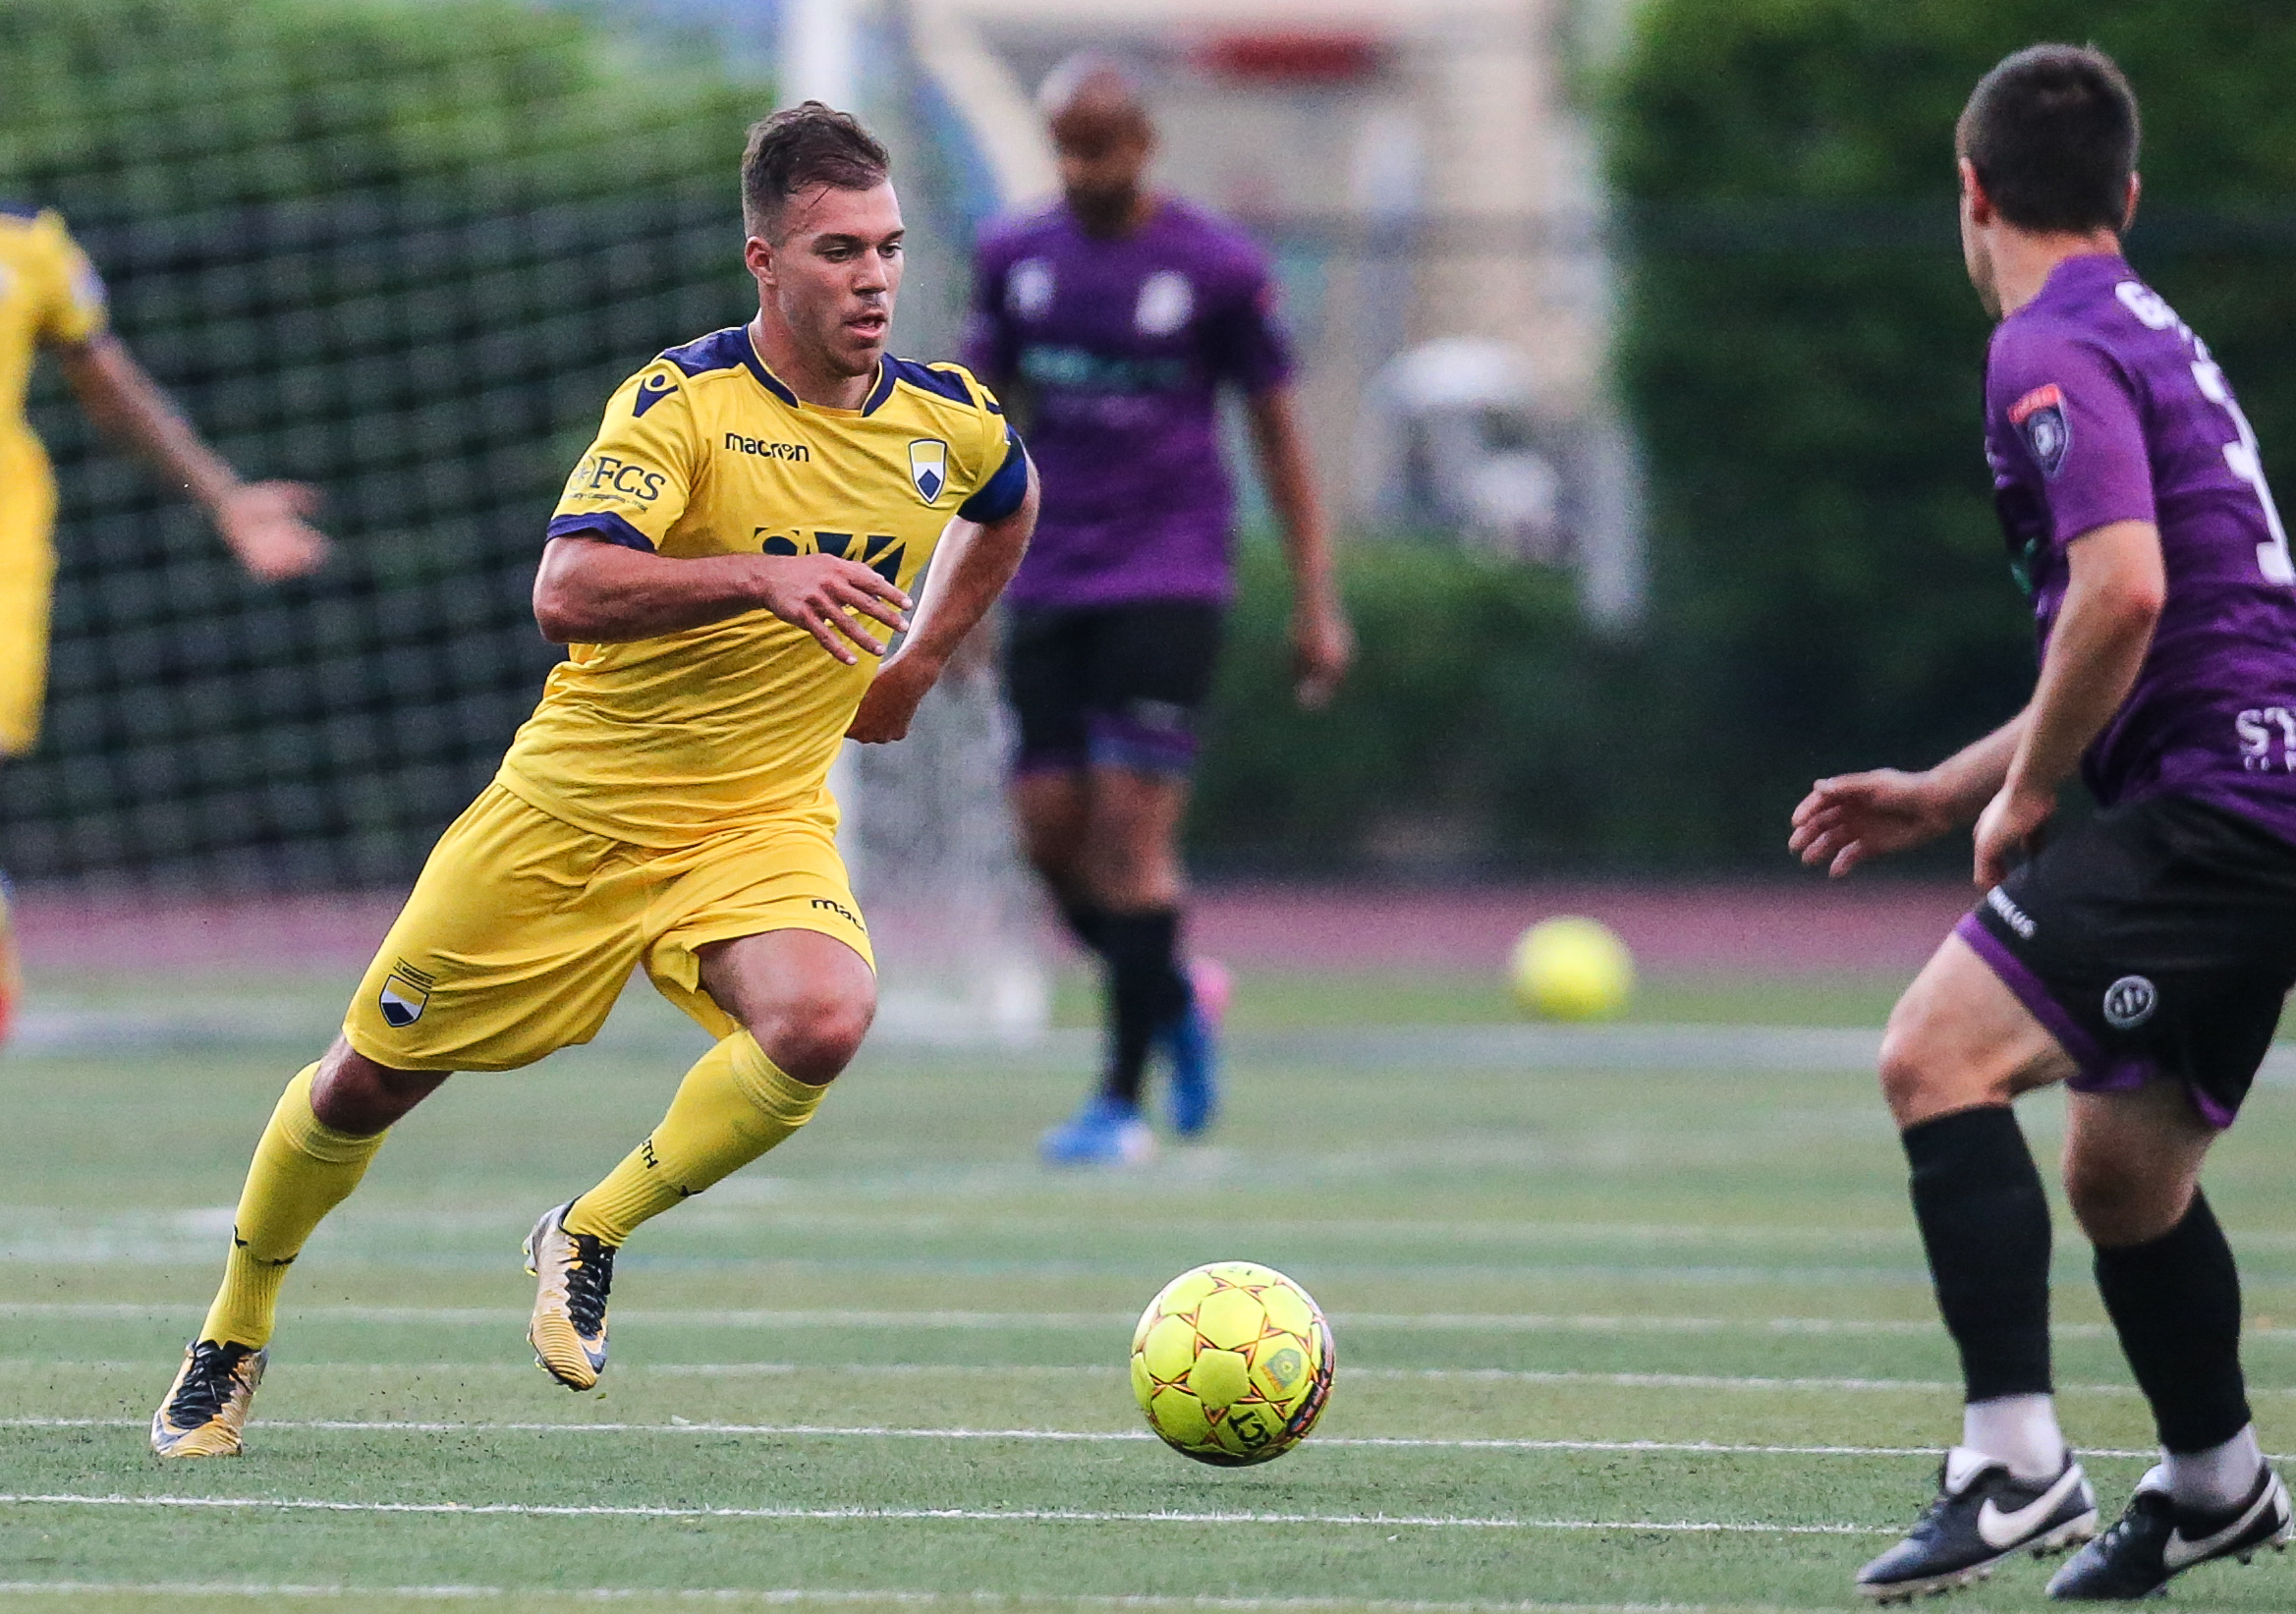 Midfielder John Antunes scored the first goal in FC Monmouth history against Atlantic City FC in 2018.